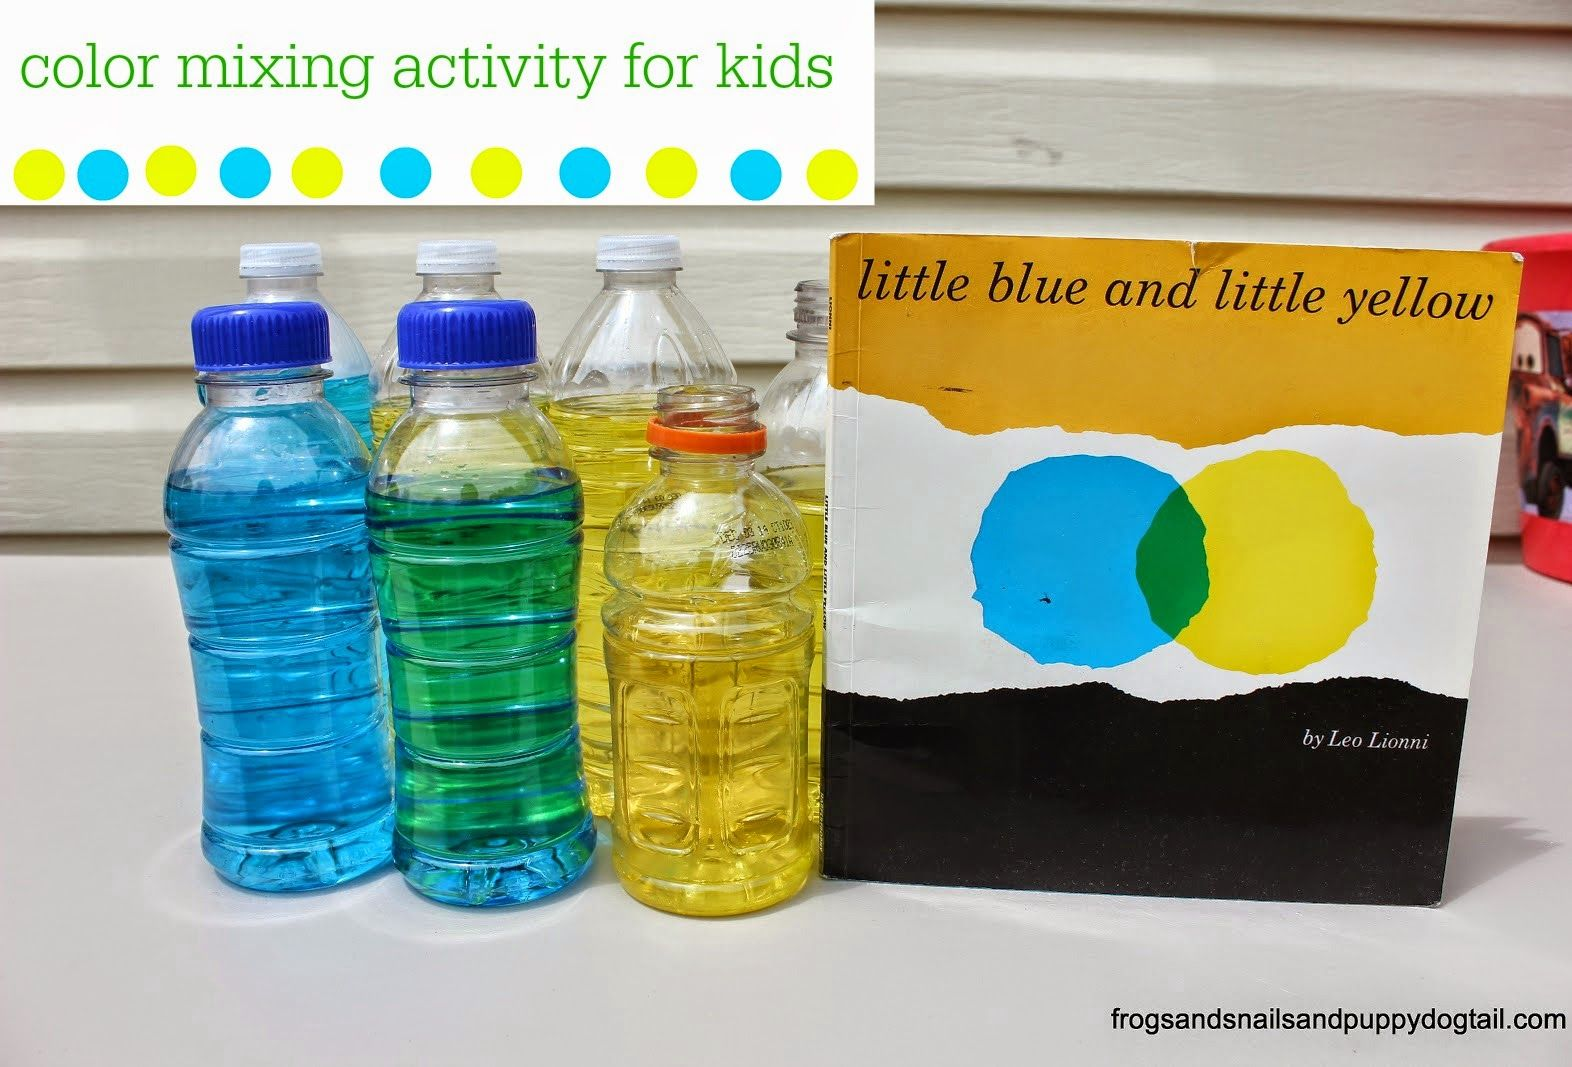 Little Blue And Little Yellow Color Mixing Activity For